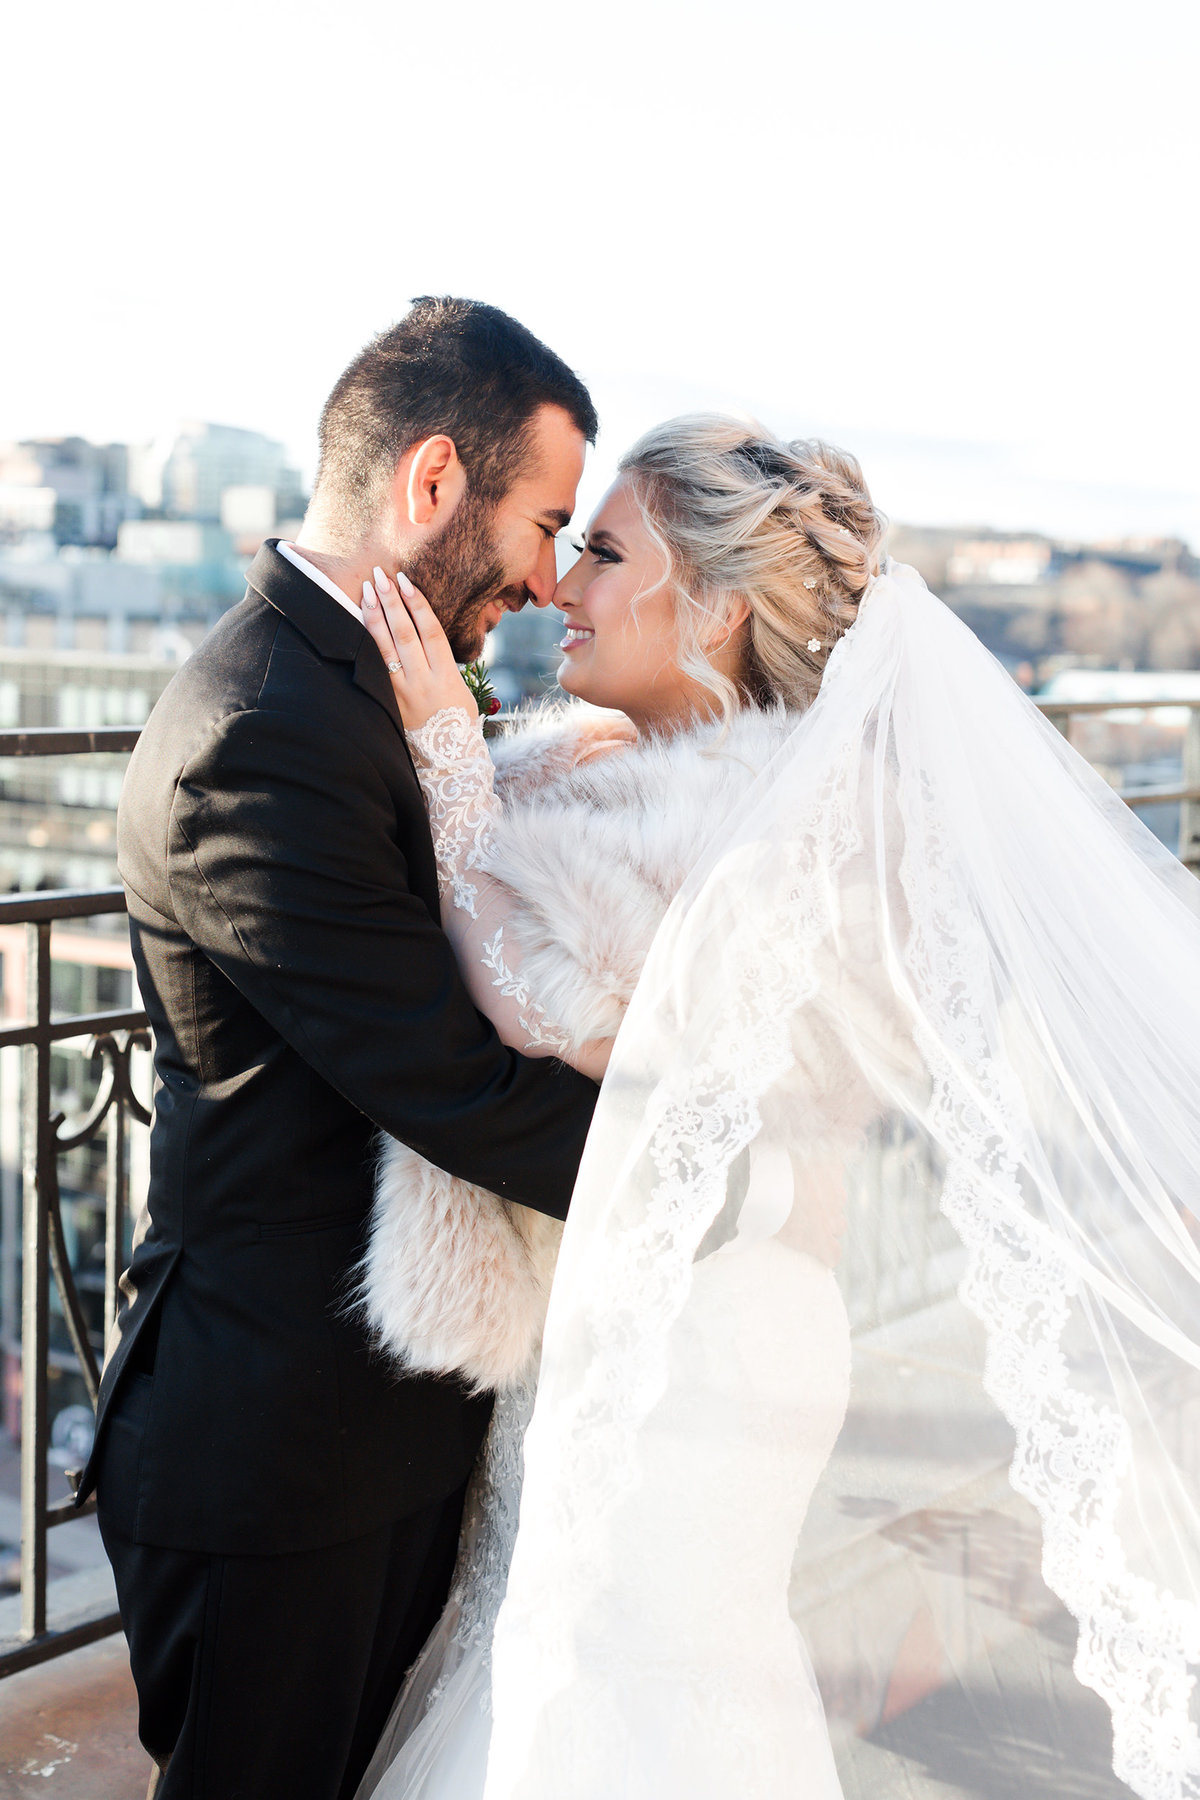 Terri-Lynn Warren Photography - Halifax Winter Wedding Photographer - Westin Nova Scotia Hotel-8515